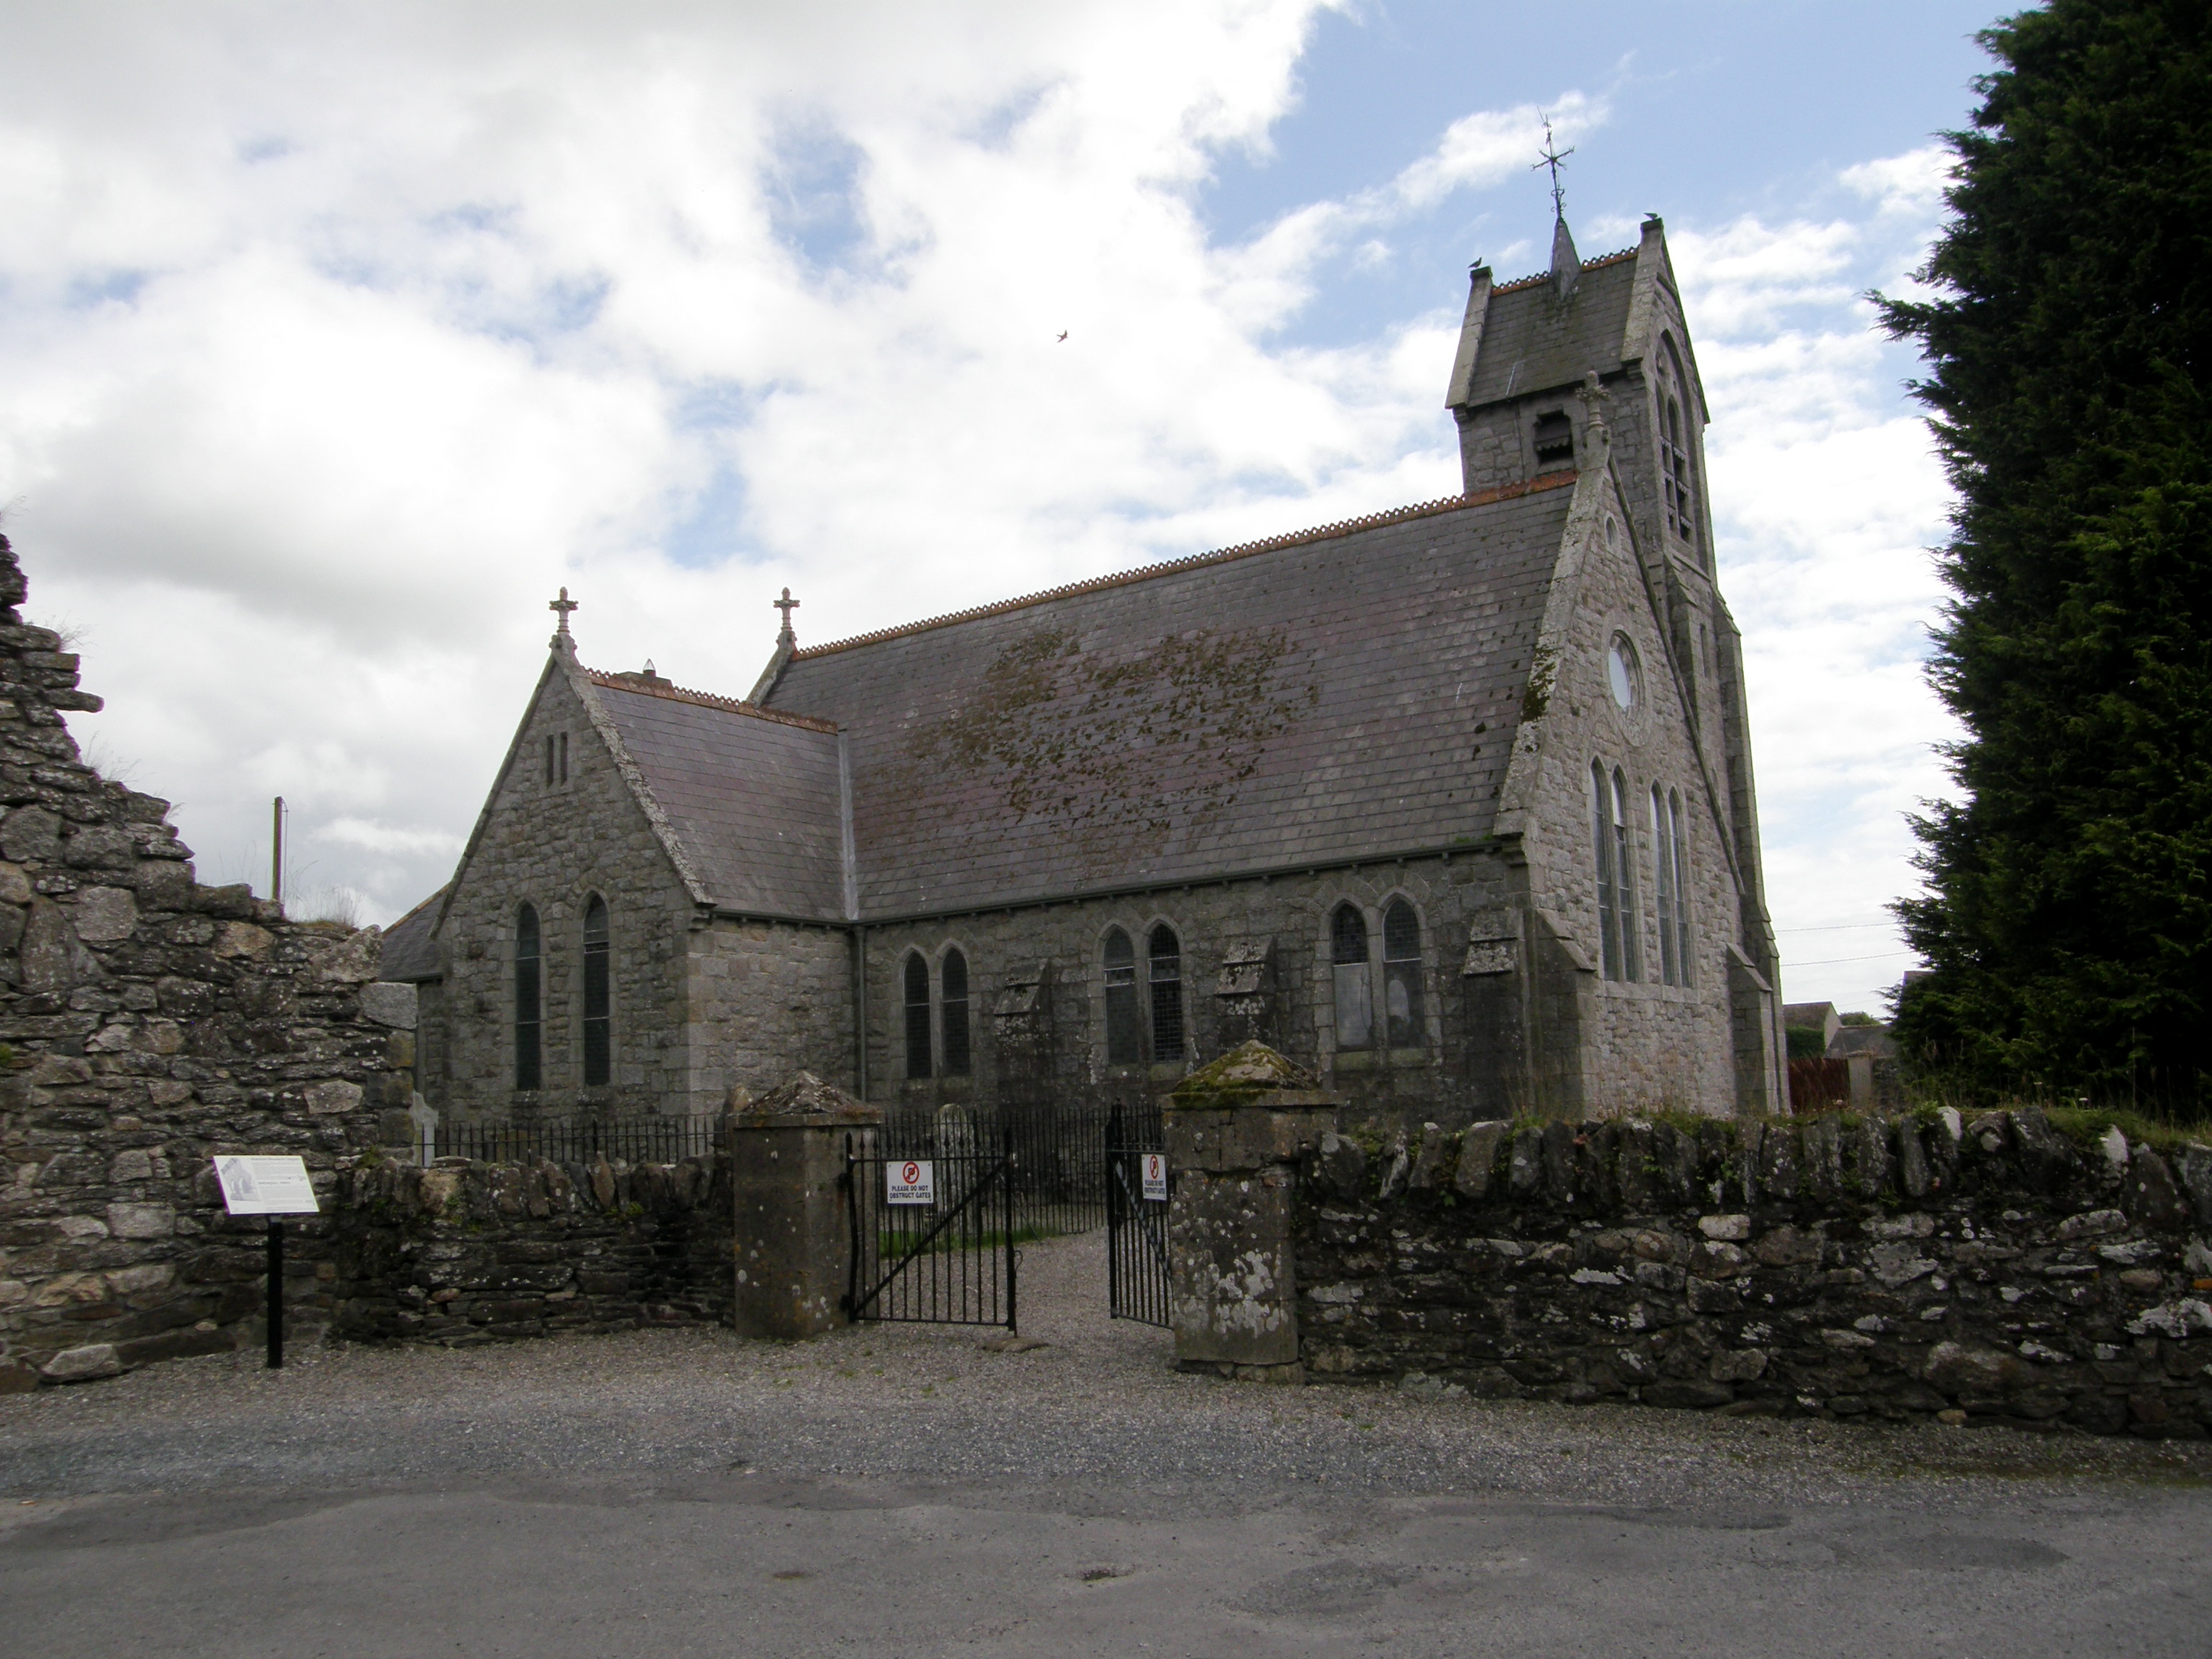 St. Mary's - Baltinglass, Church of Ireland, on Whose Grounds the Abbey Is Located